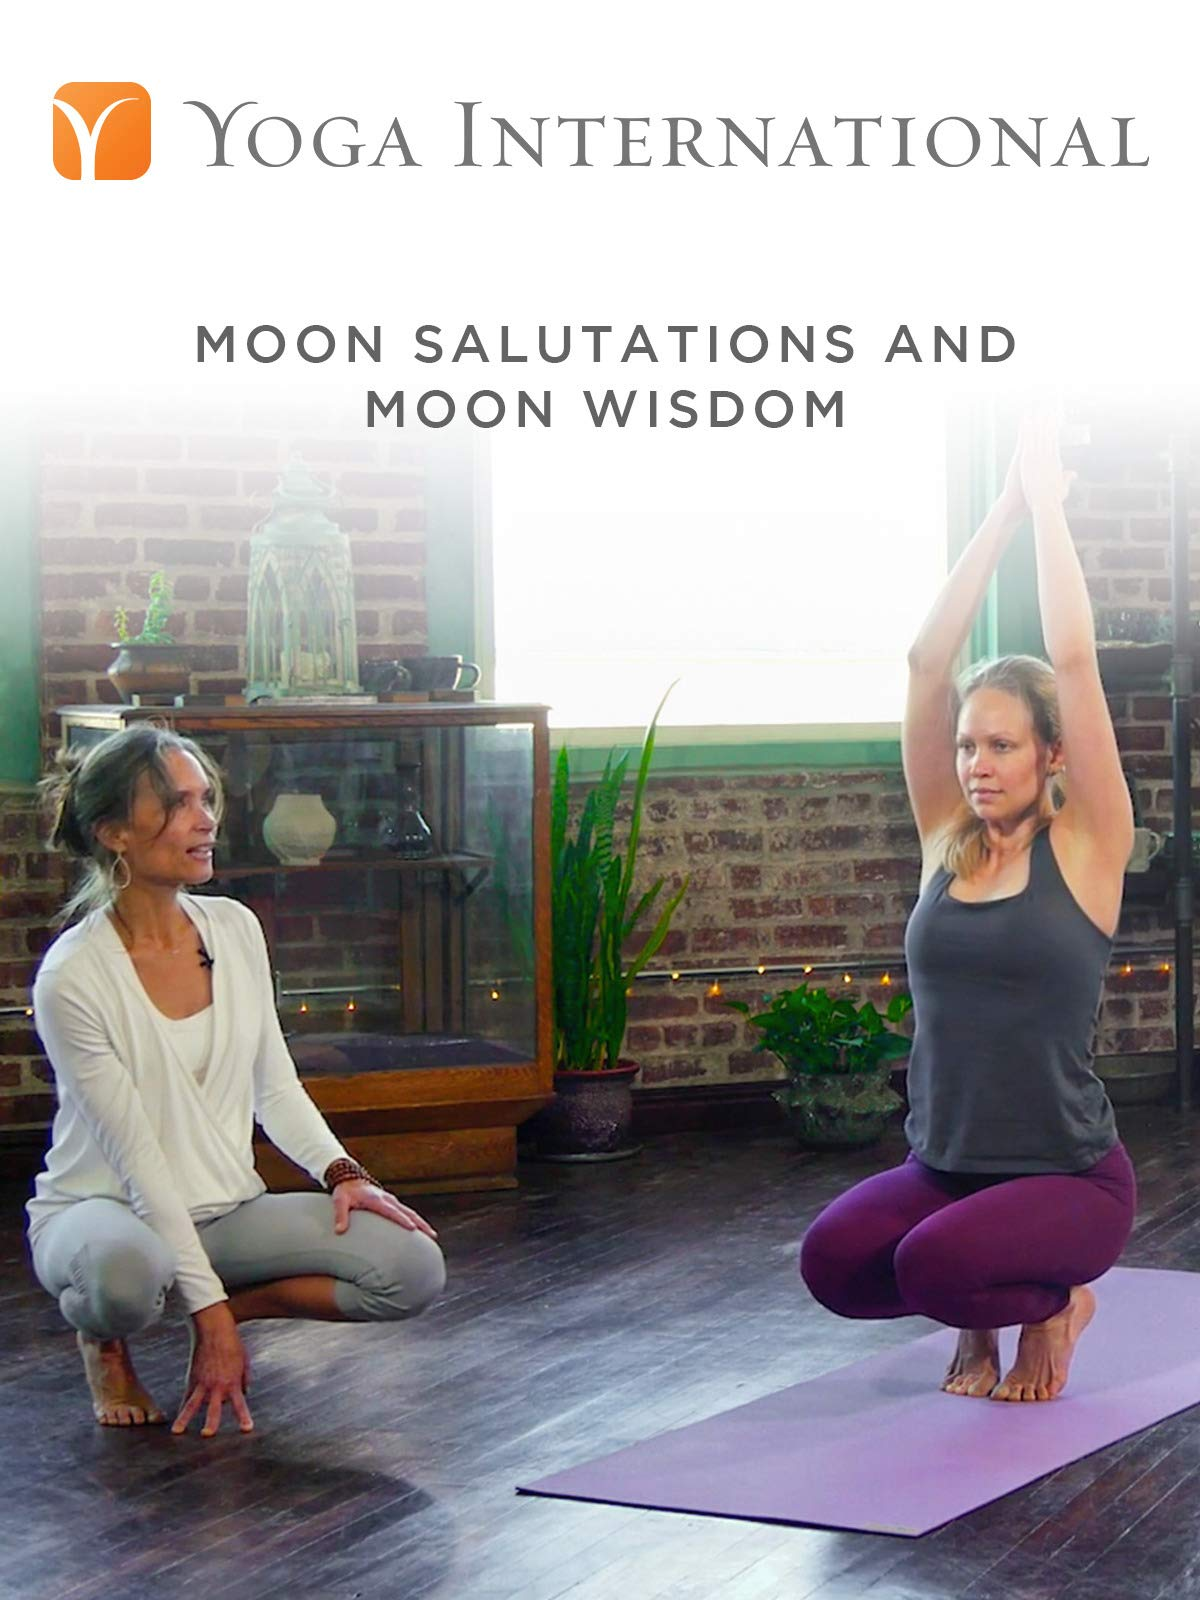 Moon Salutations and Moon Wisdom